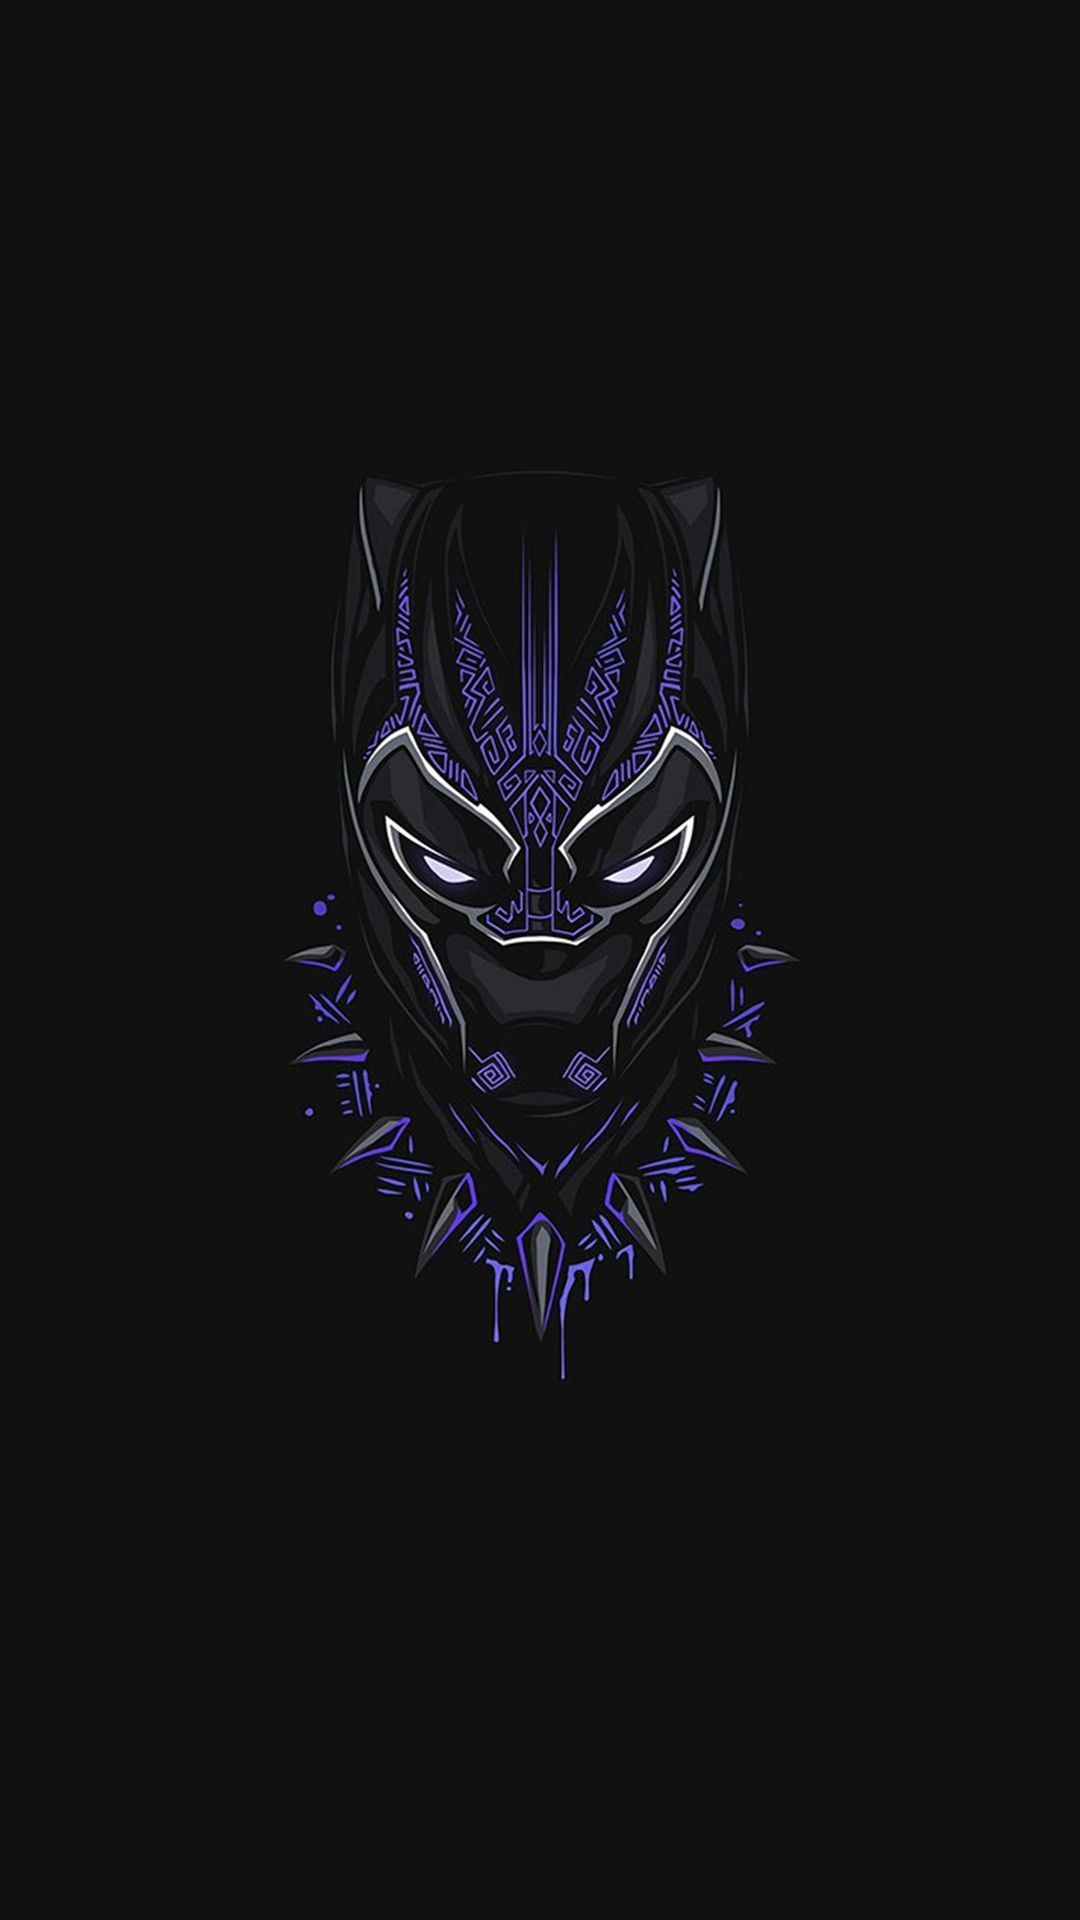 Panthere Iphone Case By Neeox In 2020 Black Panther Marvel Superhero Wallpaper Marvel Wallpaper